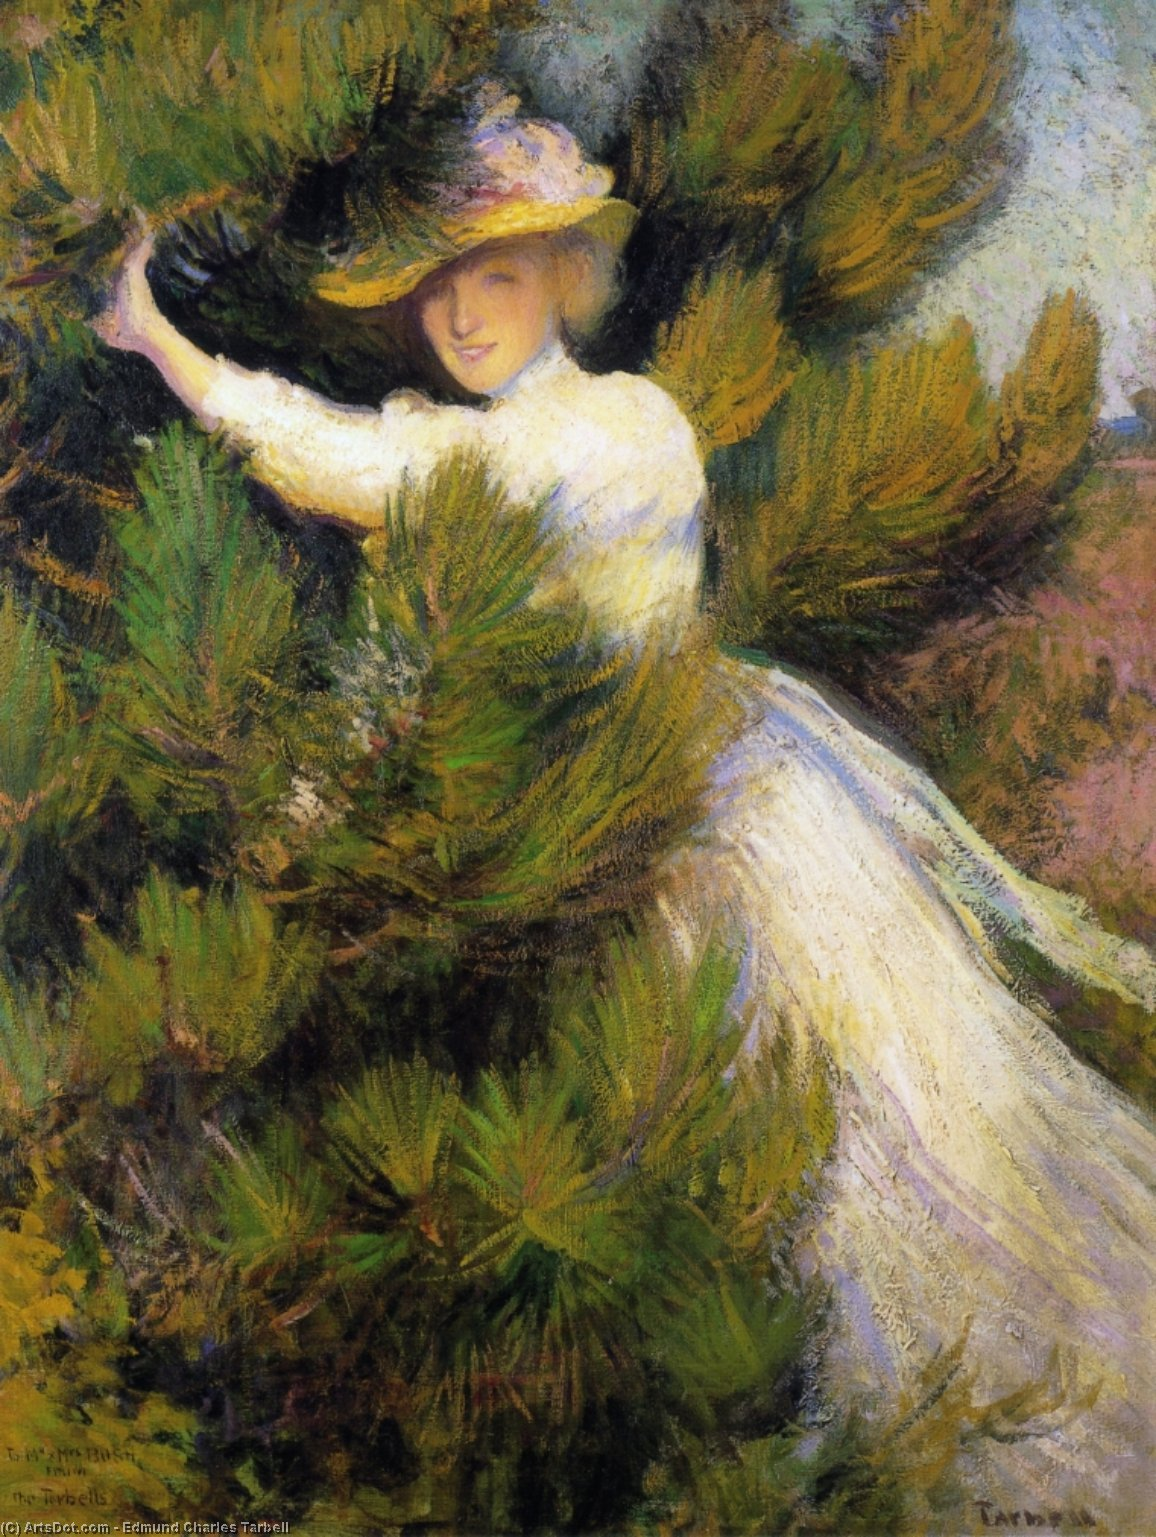 Summer Idyll (also known as Girl and Pine Trees), 1899 by Edmund Charles Tarbell (1862-1938, United States) | Art Reproduction | ArtsDot.com